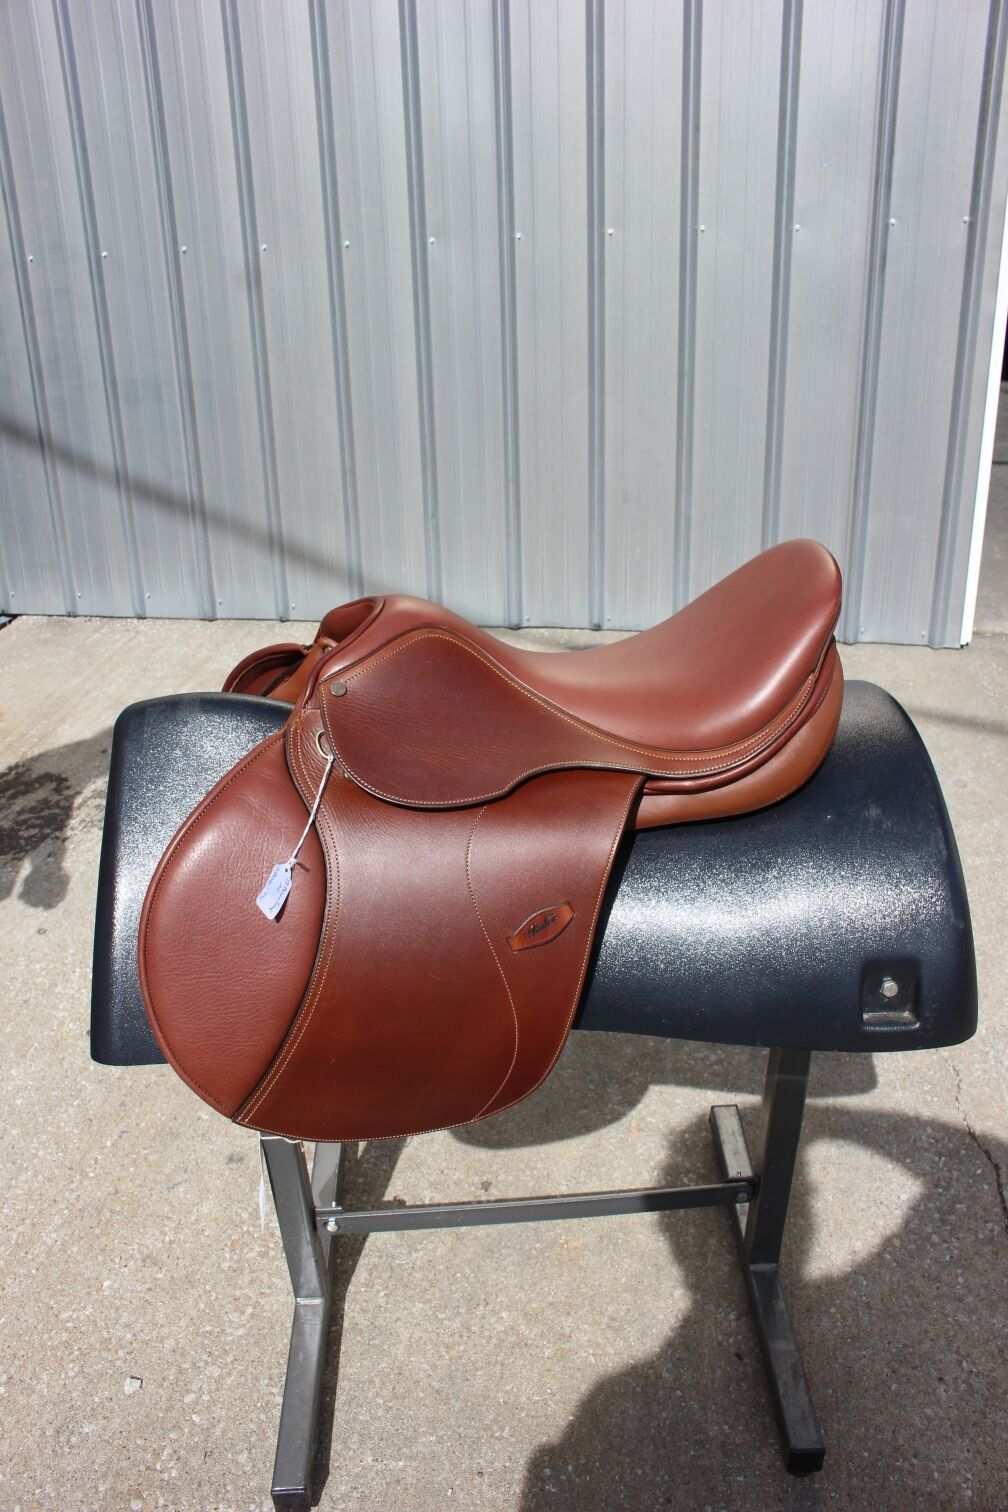 36-9 Spirig 17.5  Rider English saddle 30 medium wide tree